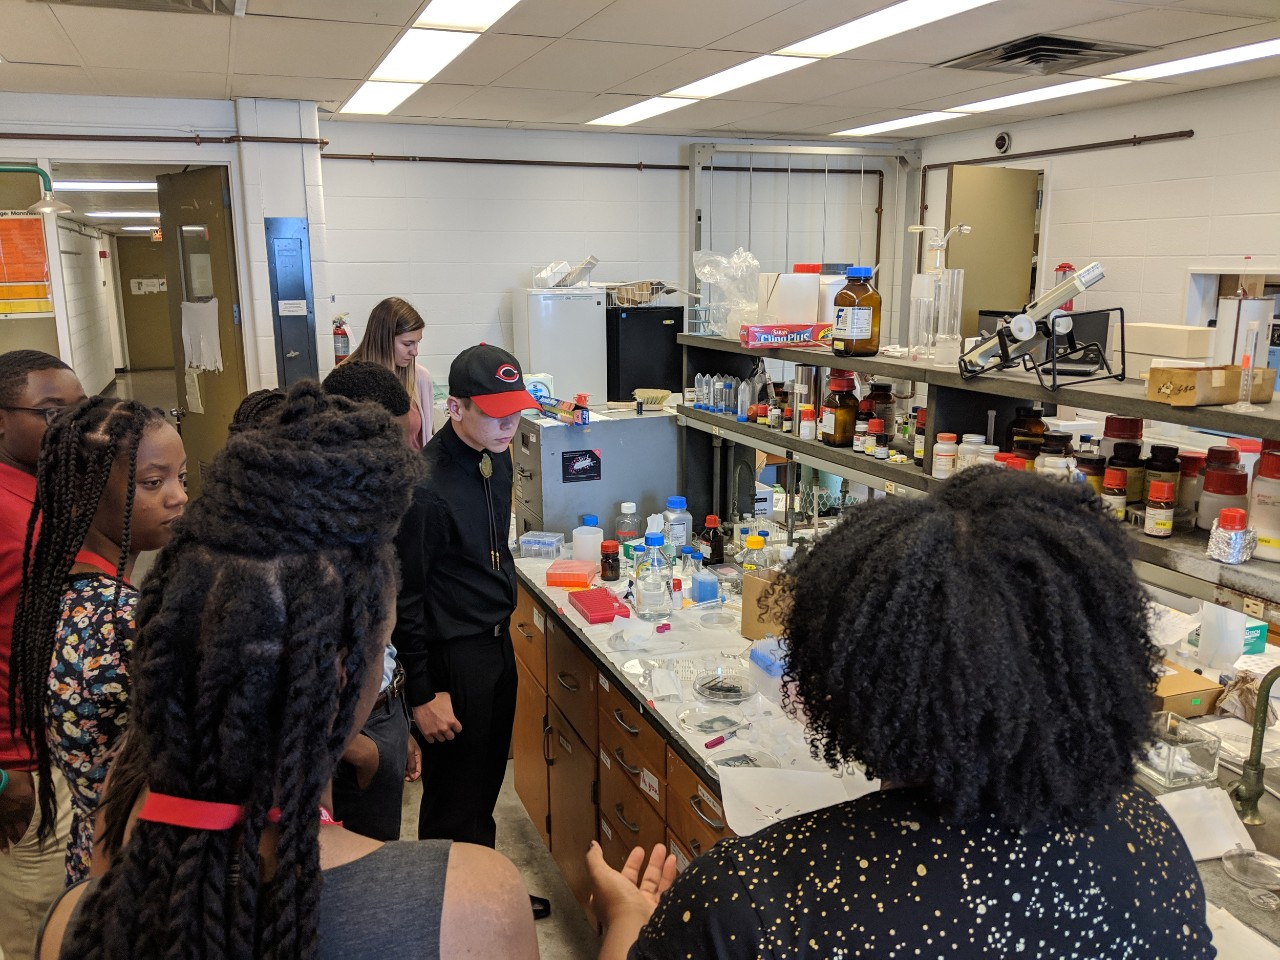 High school students observe chemistry projects in a UC chemistry lab.